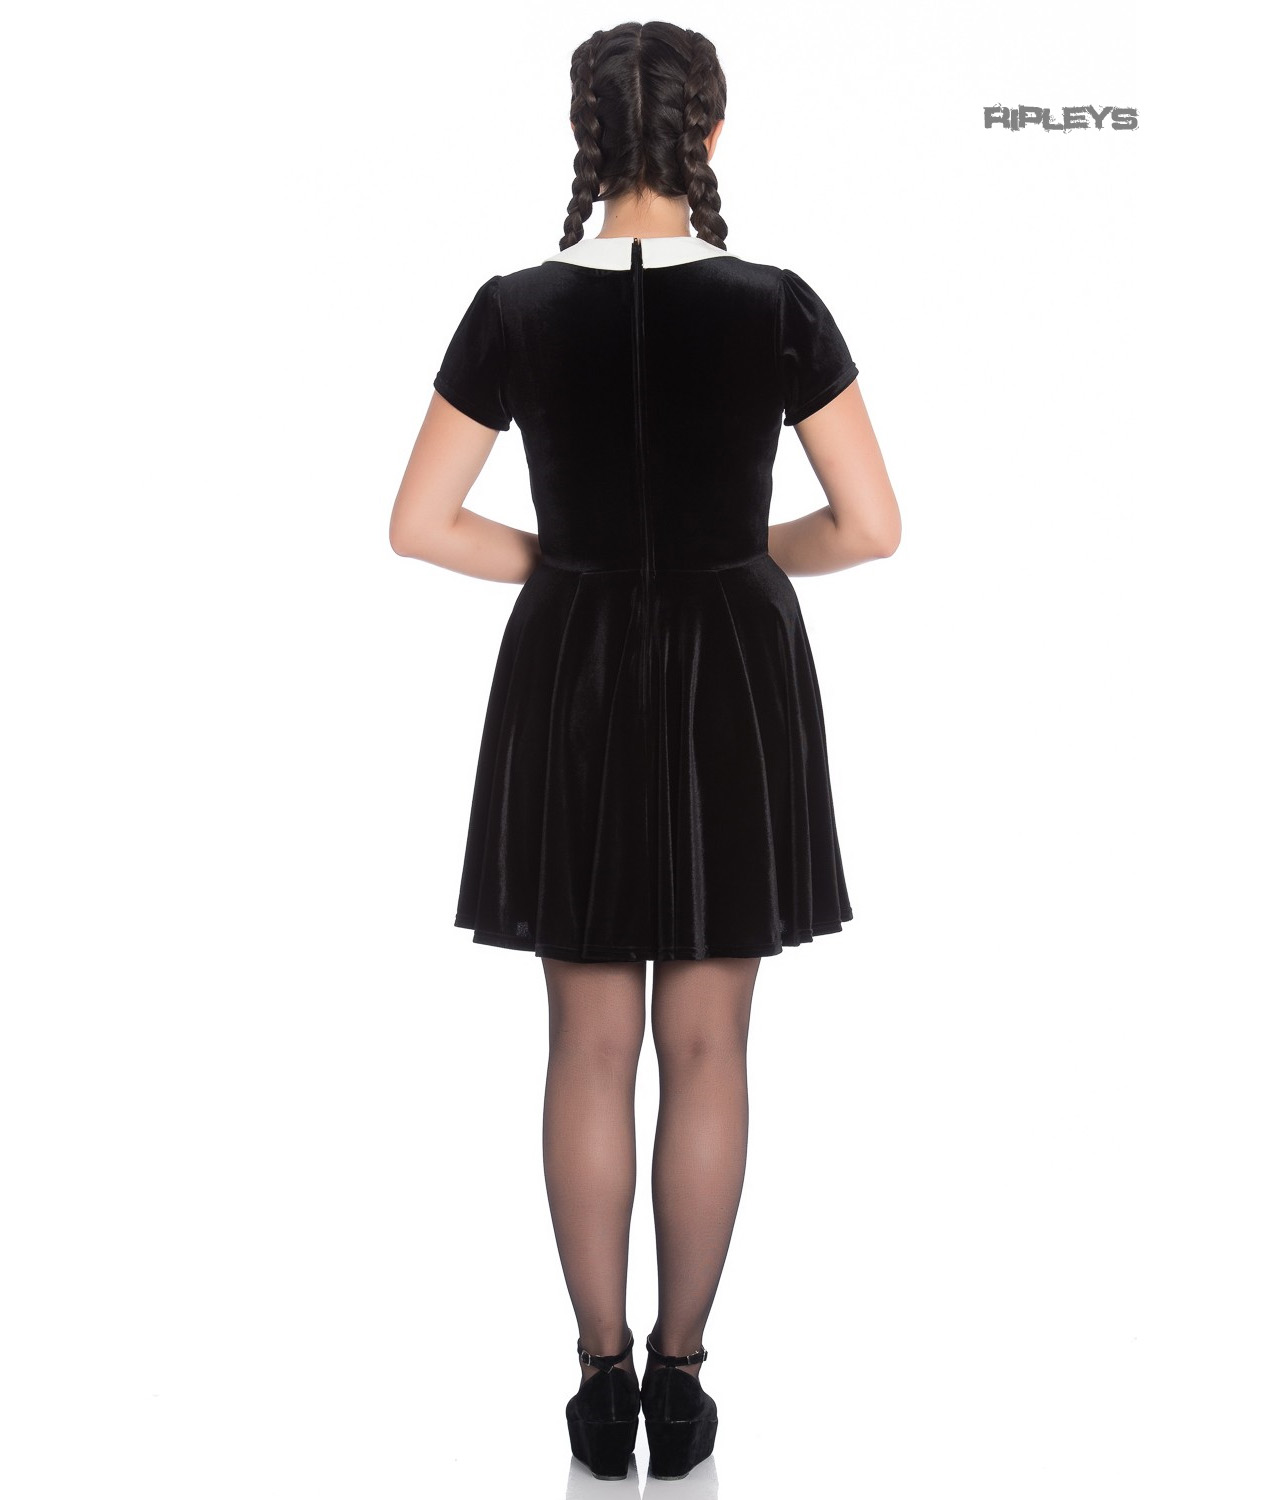 Hell-Bunny-Gothic-Mini-Skater-Dress-MISS-MUFFET-Spiders-Black-Velvet-All-Sizes thumbnail 16